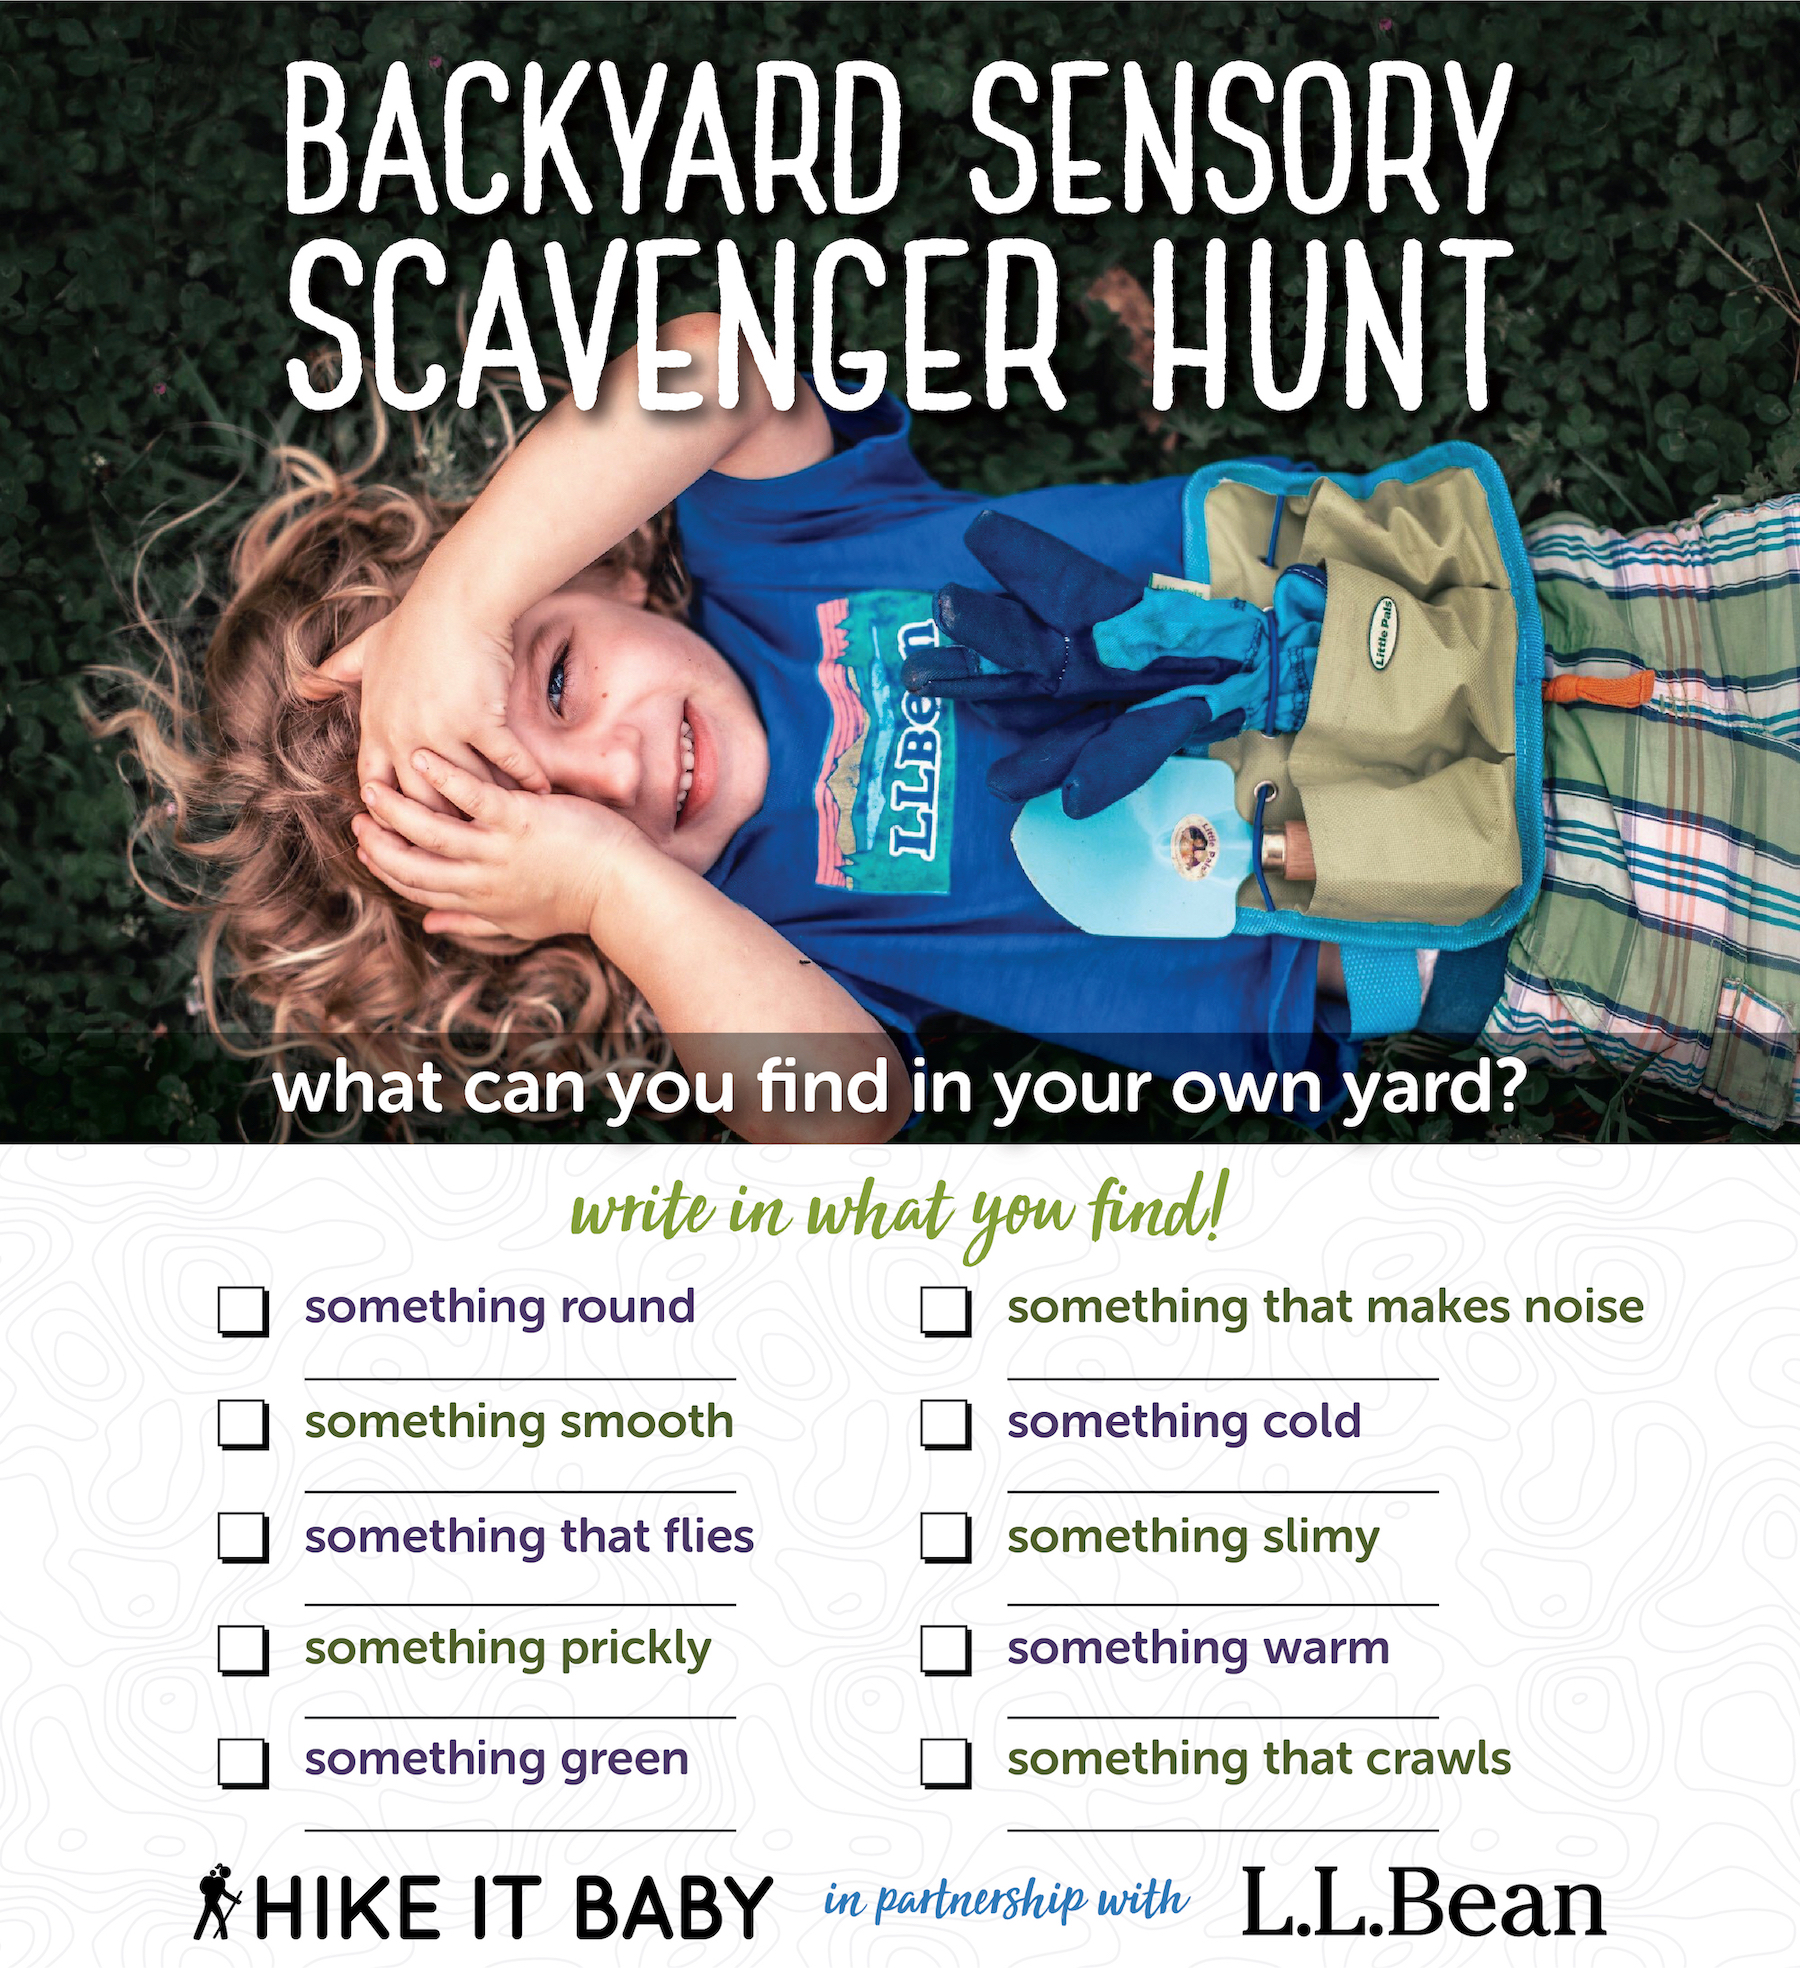 backyard sensory scavenger hunt sponsored by LL Bean activity sheet download